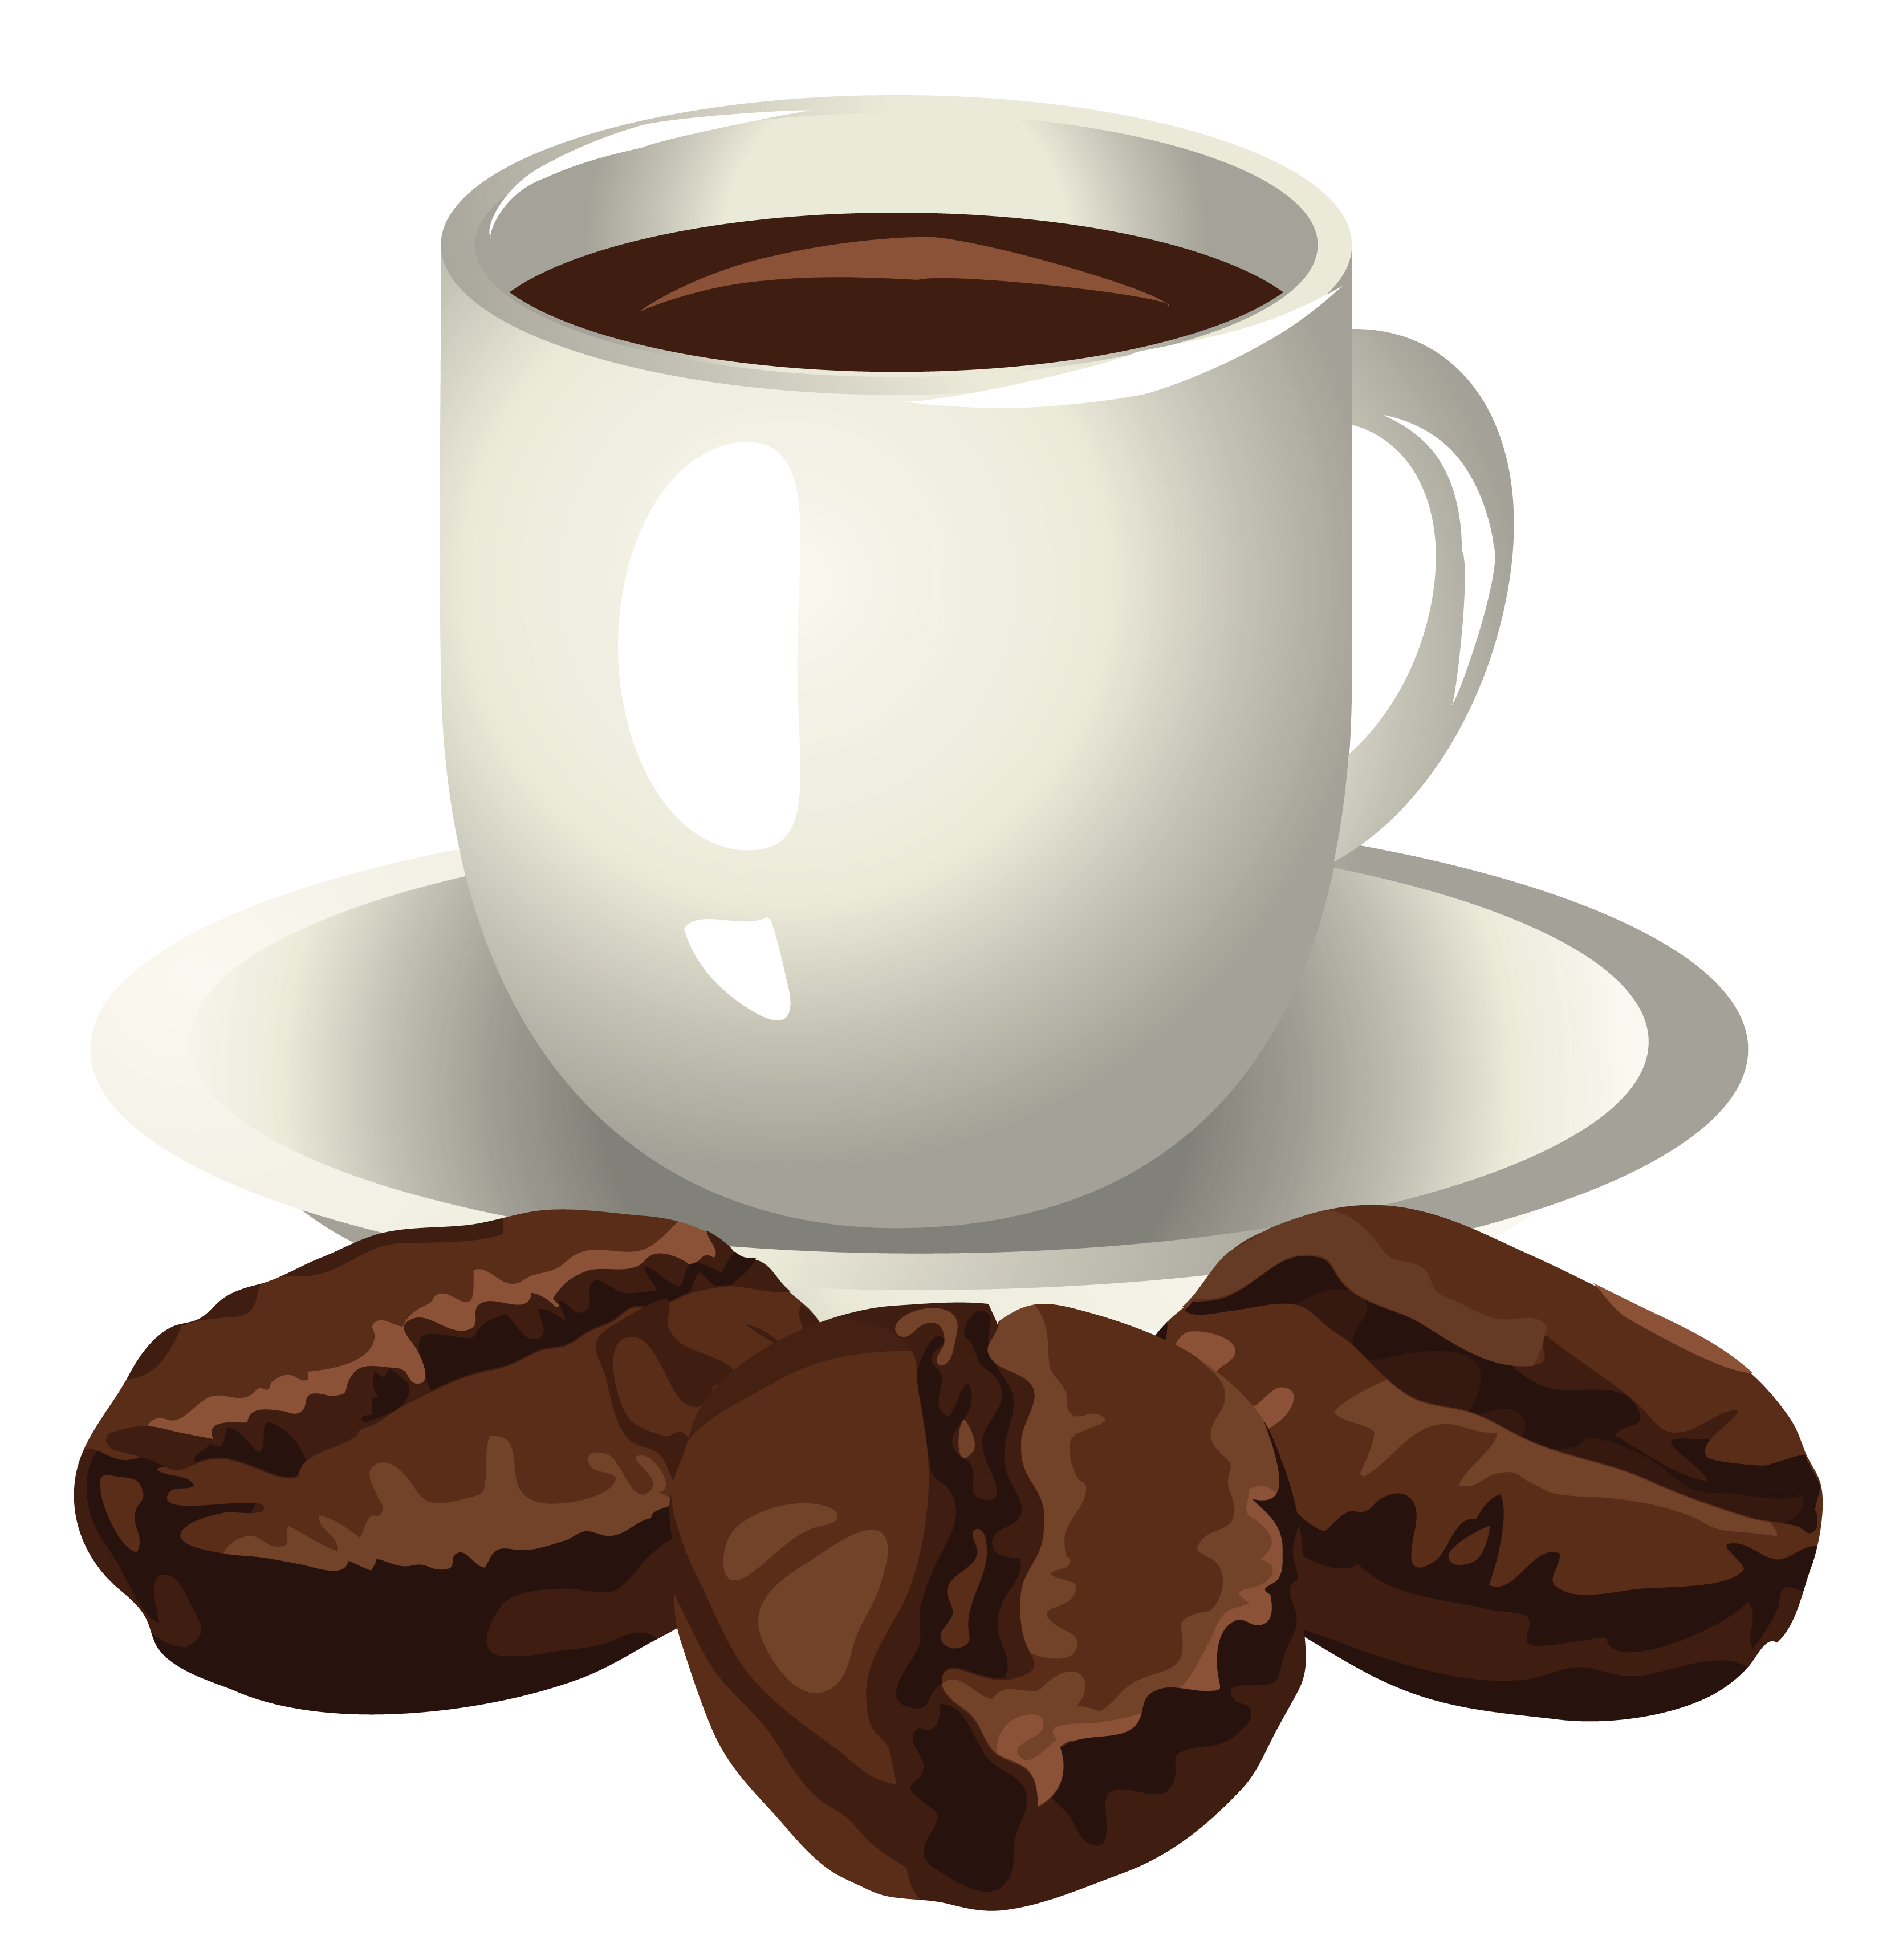 clipart coffee mocha #67805457